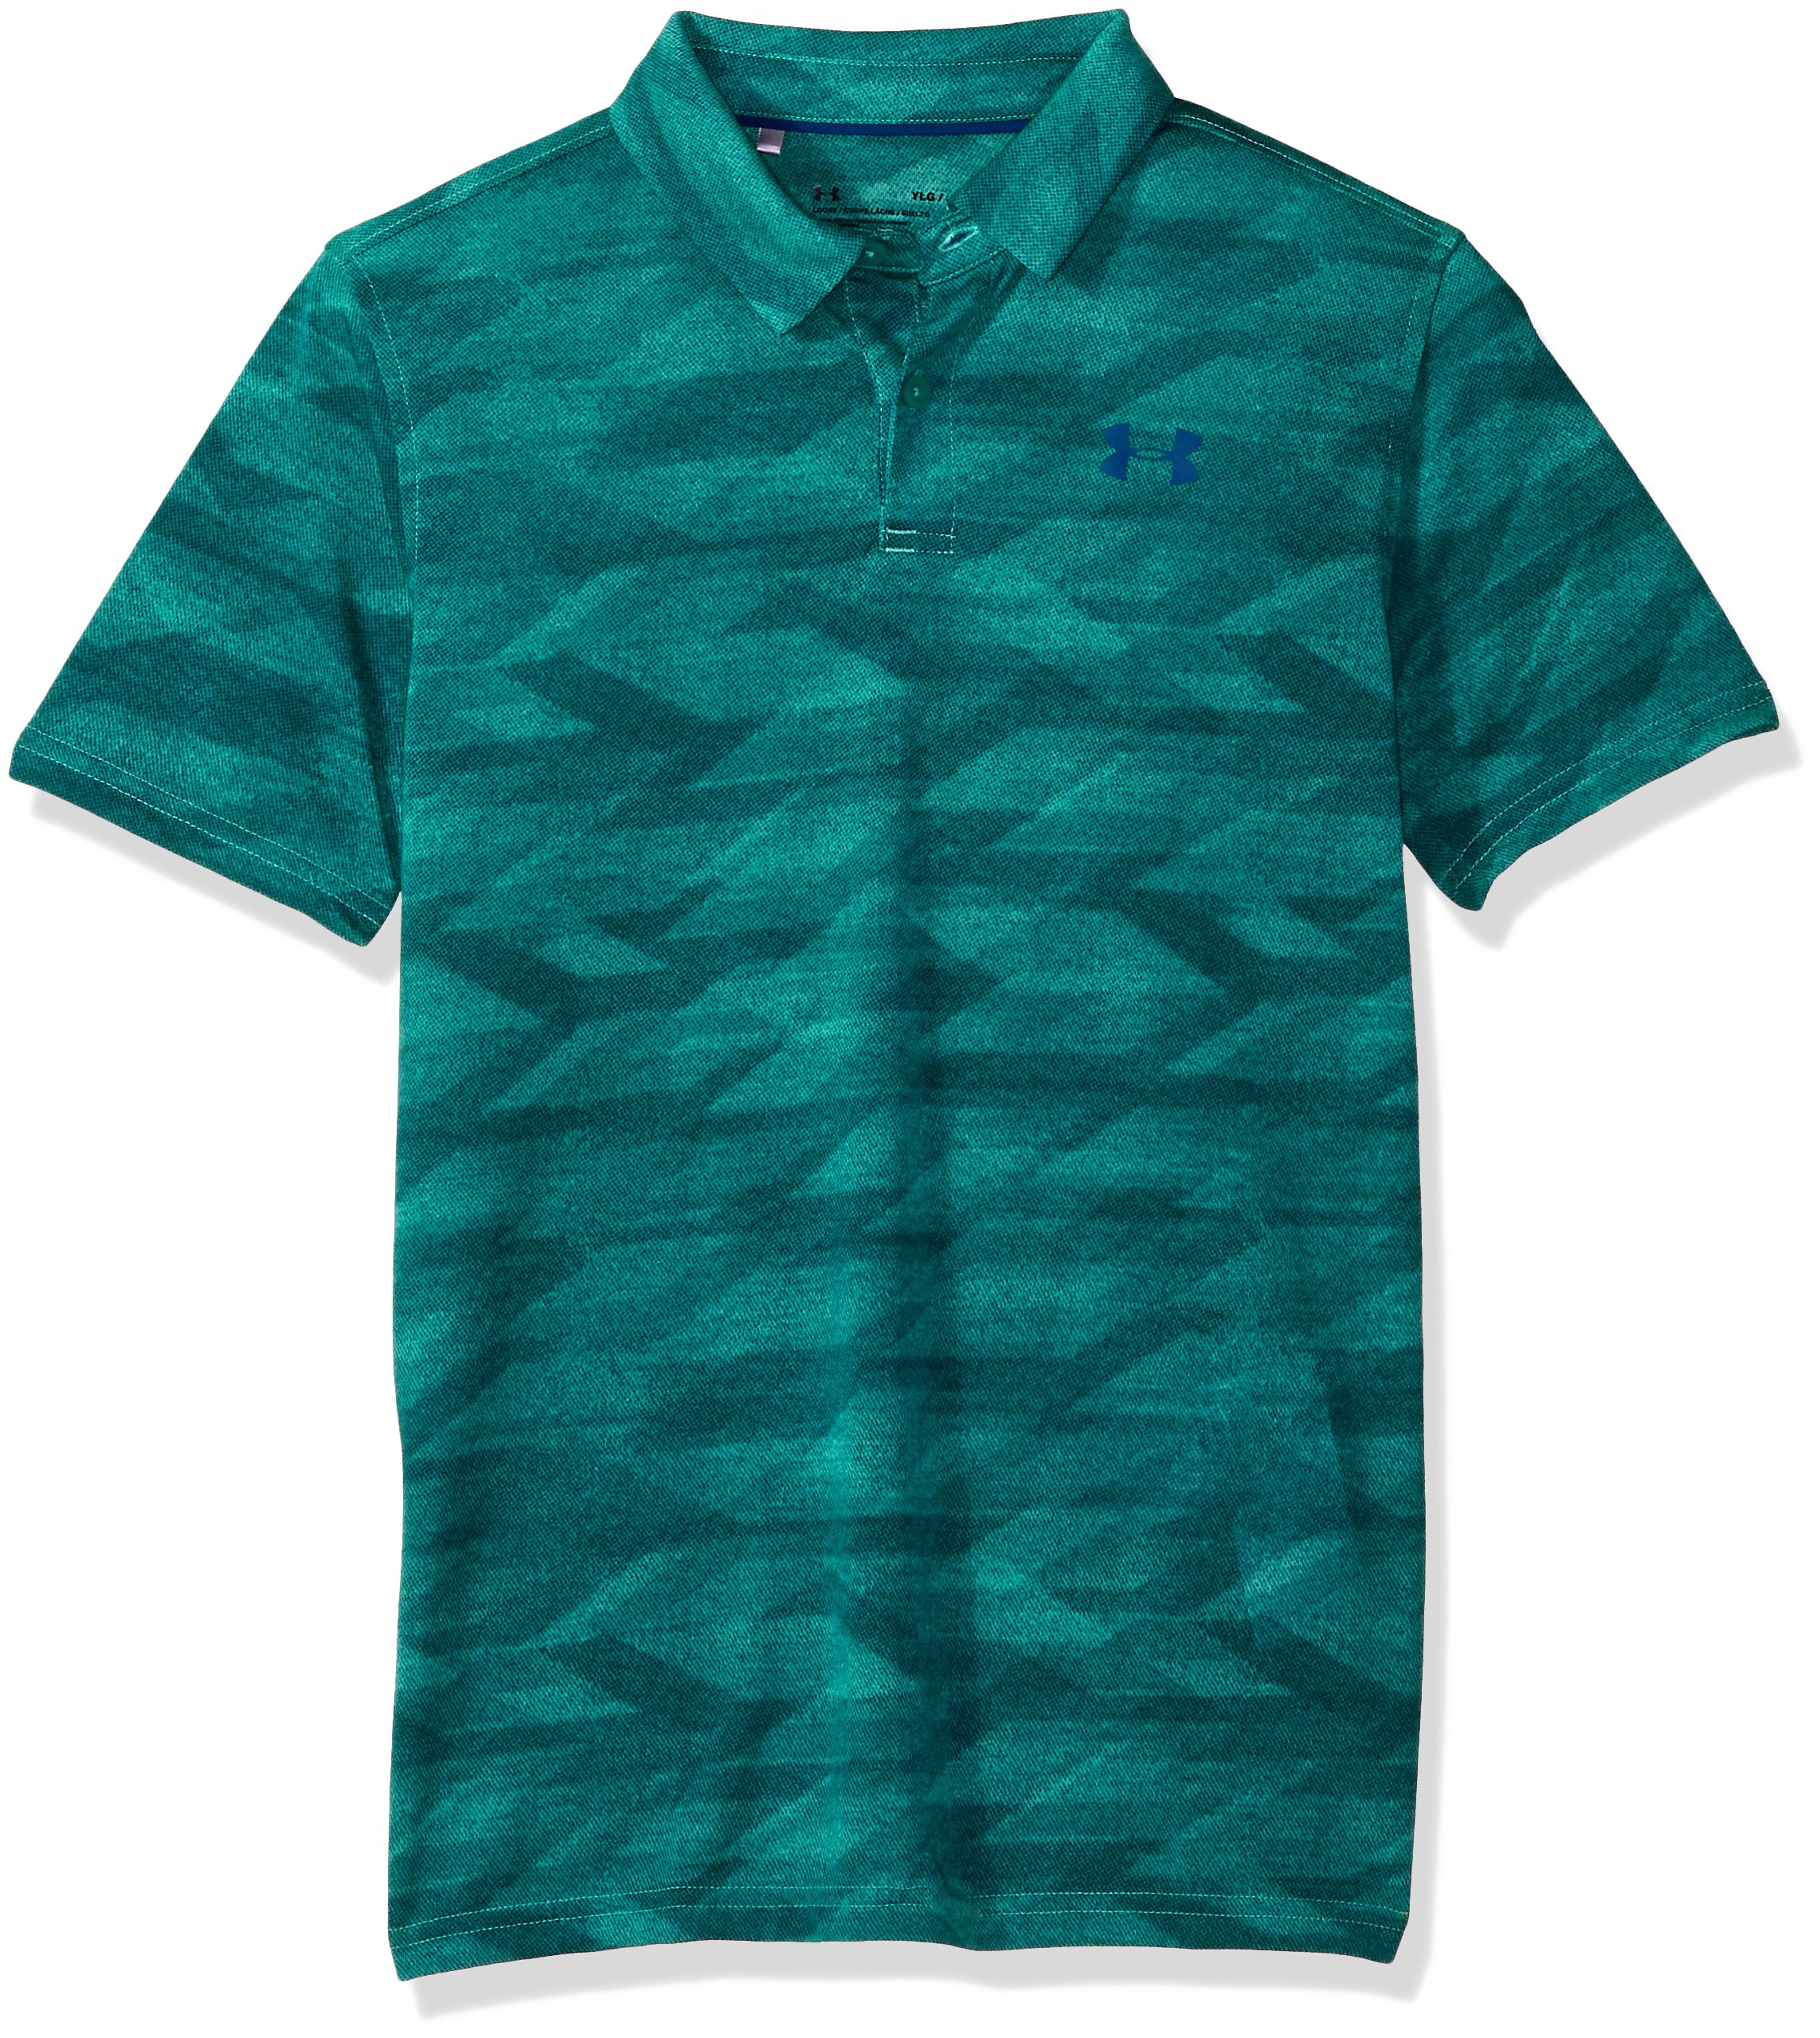 Under Armour Boys' Threadborne Polo, Teal Punch (595)/Moroccan Blue, Youth X-Small by Under Armour